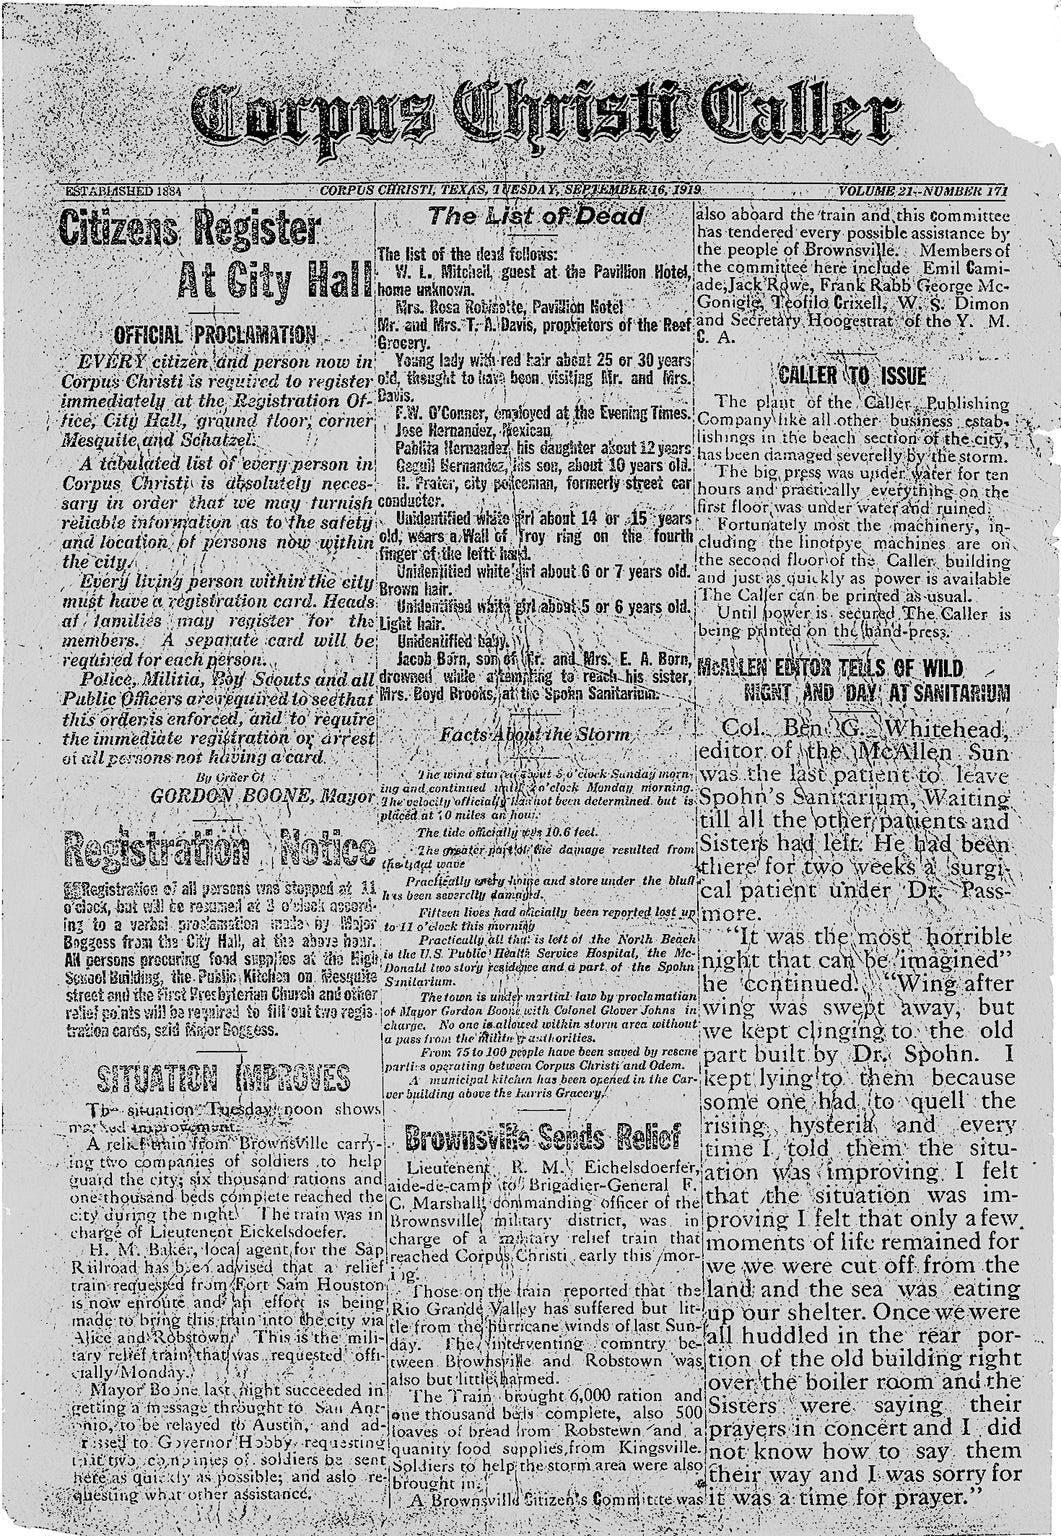 The front page of the Corpus Christi Caller on Sept. 16, 1919 following the devastating hurricane that made landfall on Sept. 14.